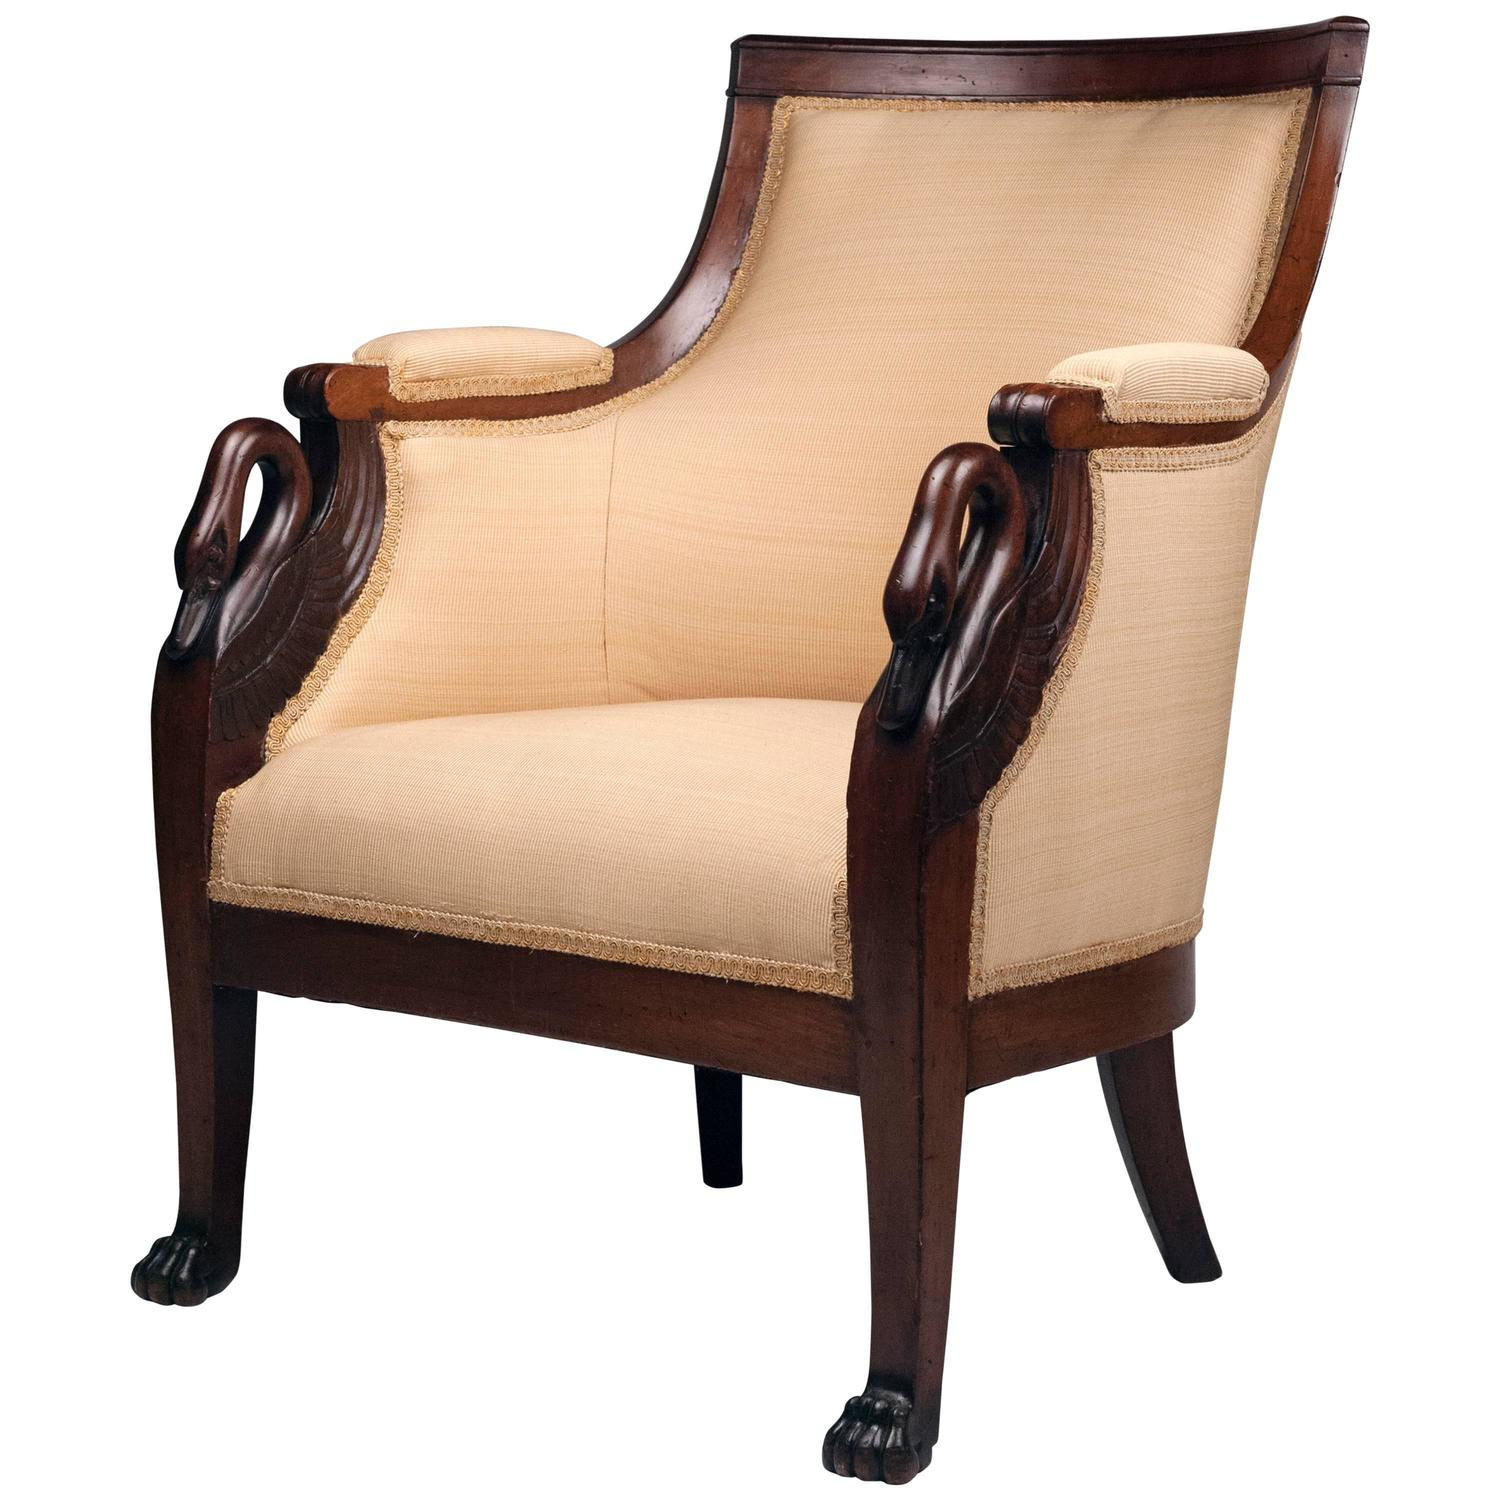 French armchair with carved swan motif for sale at 1stdibs for Swan chairs for sale